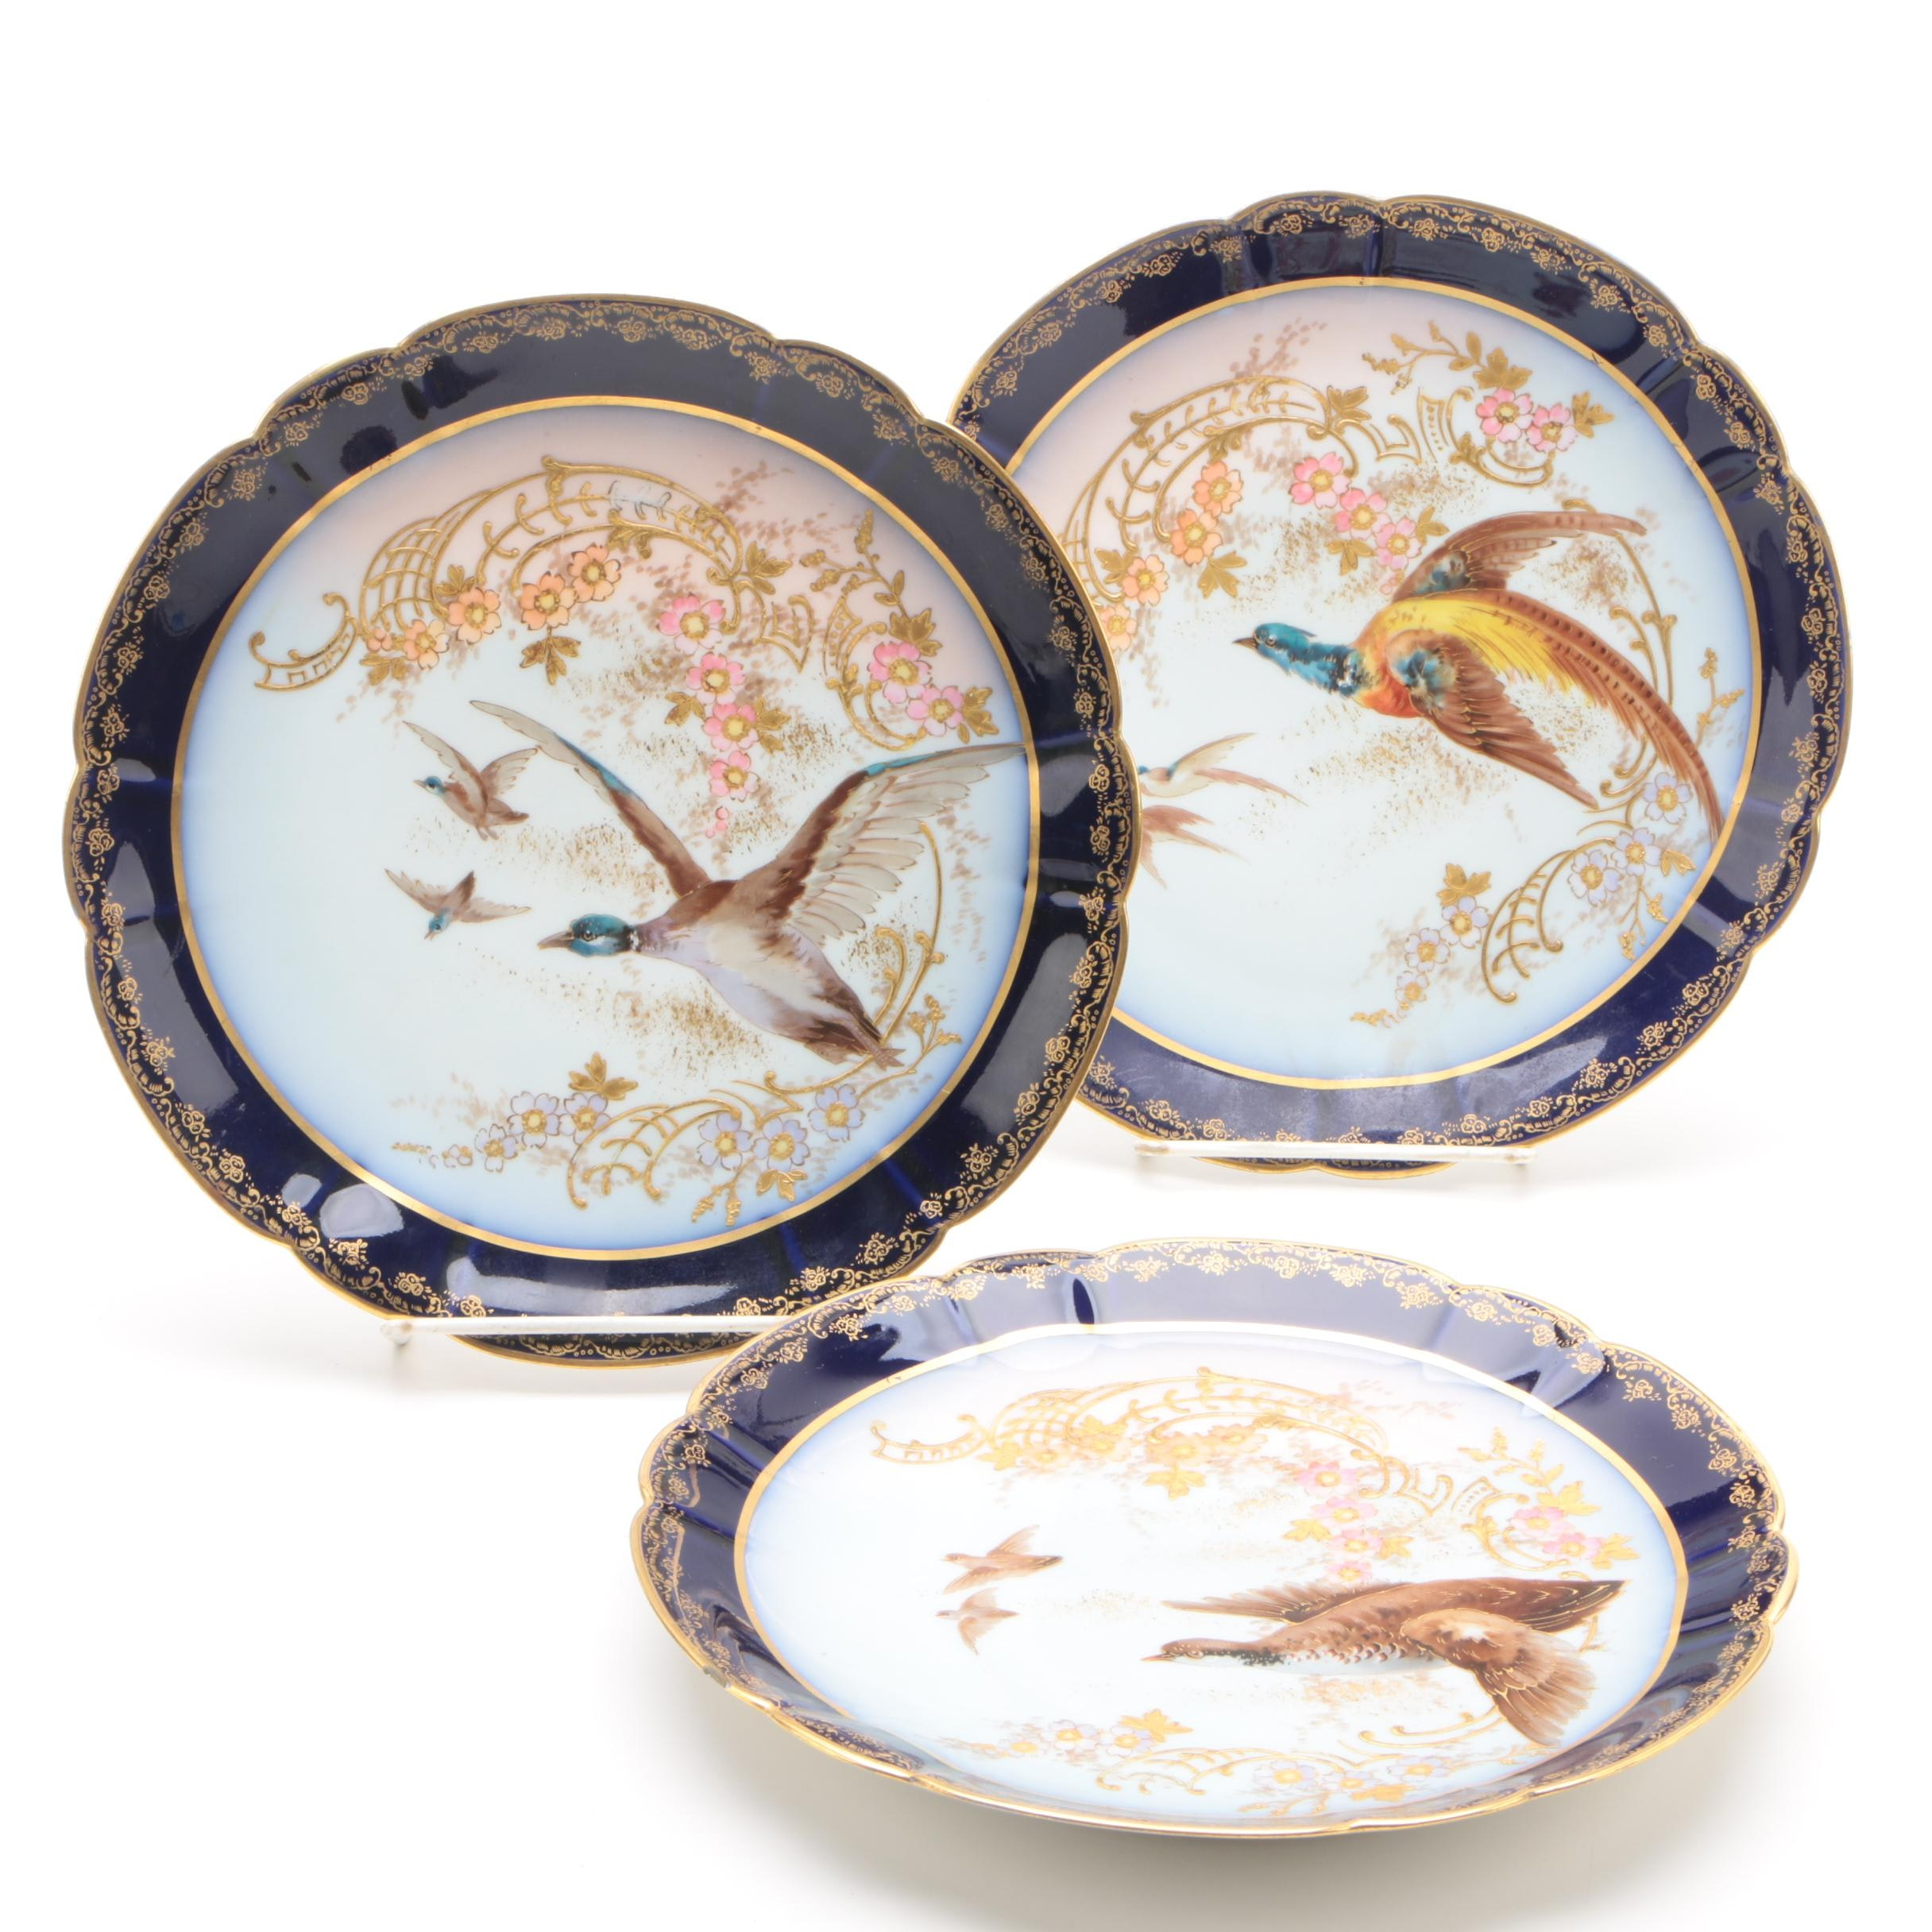 Antique Hand-Painted M. Redon Limoges Porcelain Plates featuring Game Birds